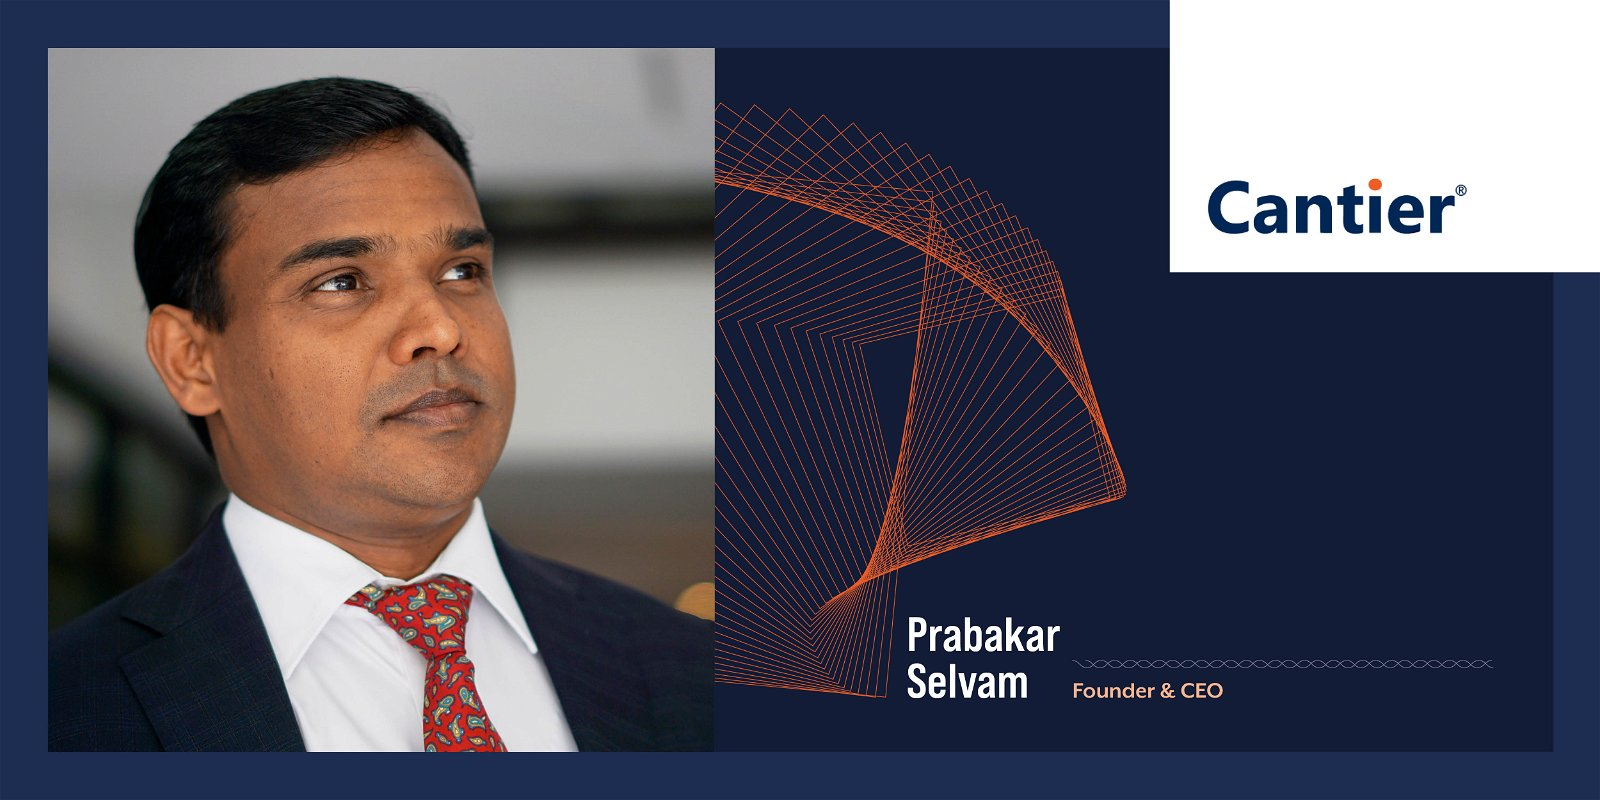 Cantier Systems iot Prabakar Selvam Disruptive Technologies IndustryWired